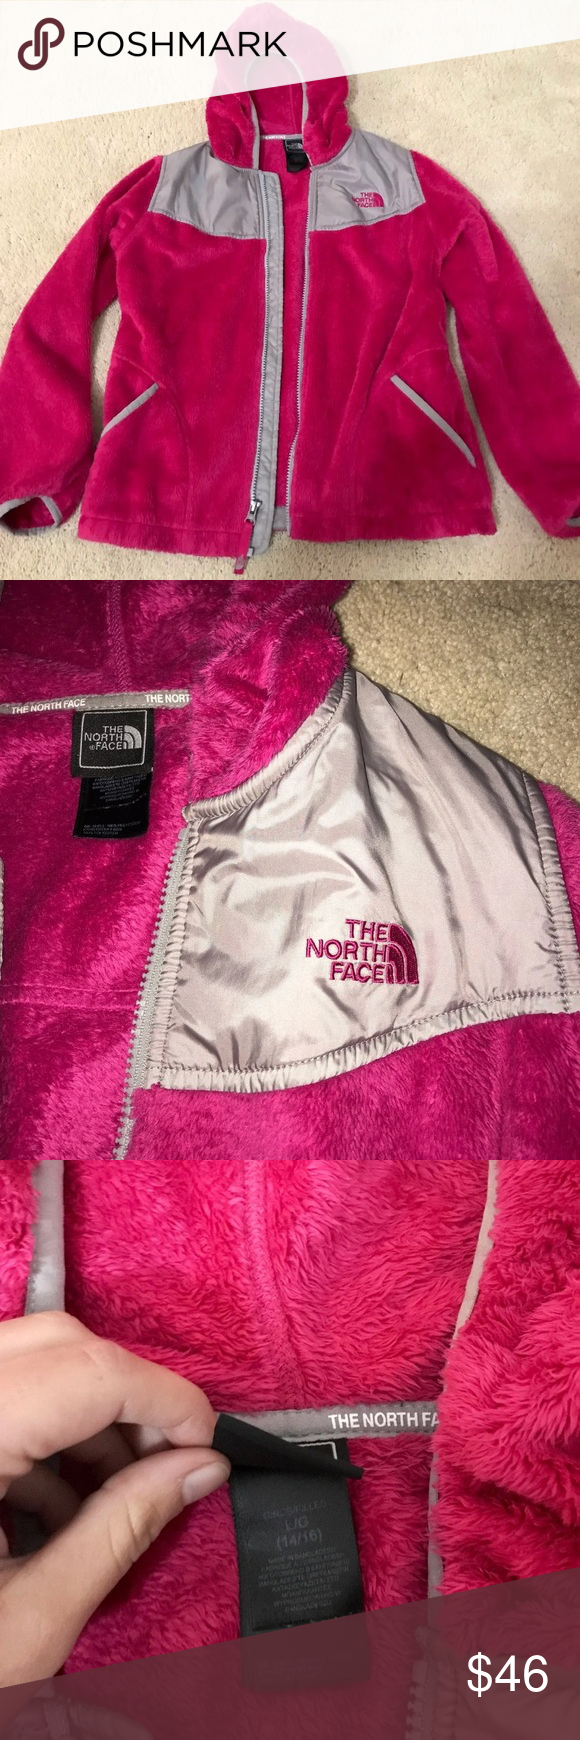 The North Face Girl S Hot Pink Jacket North Face Girls Pink Jacket Hot Pink [ 1740 x 580 Pixel ]